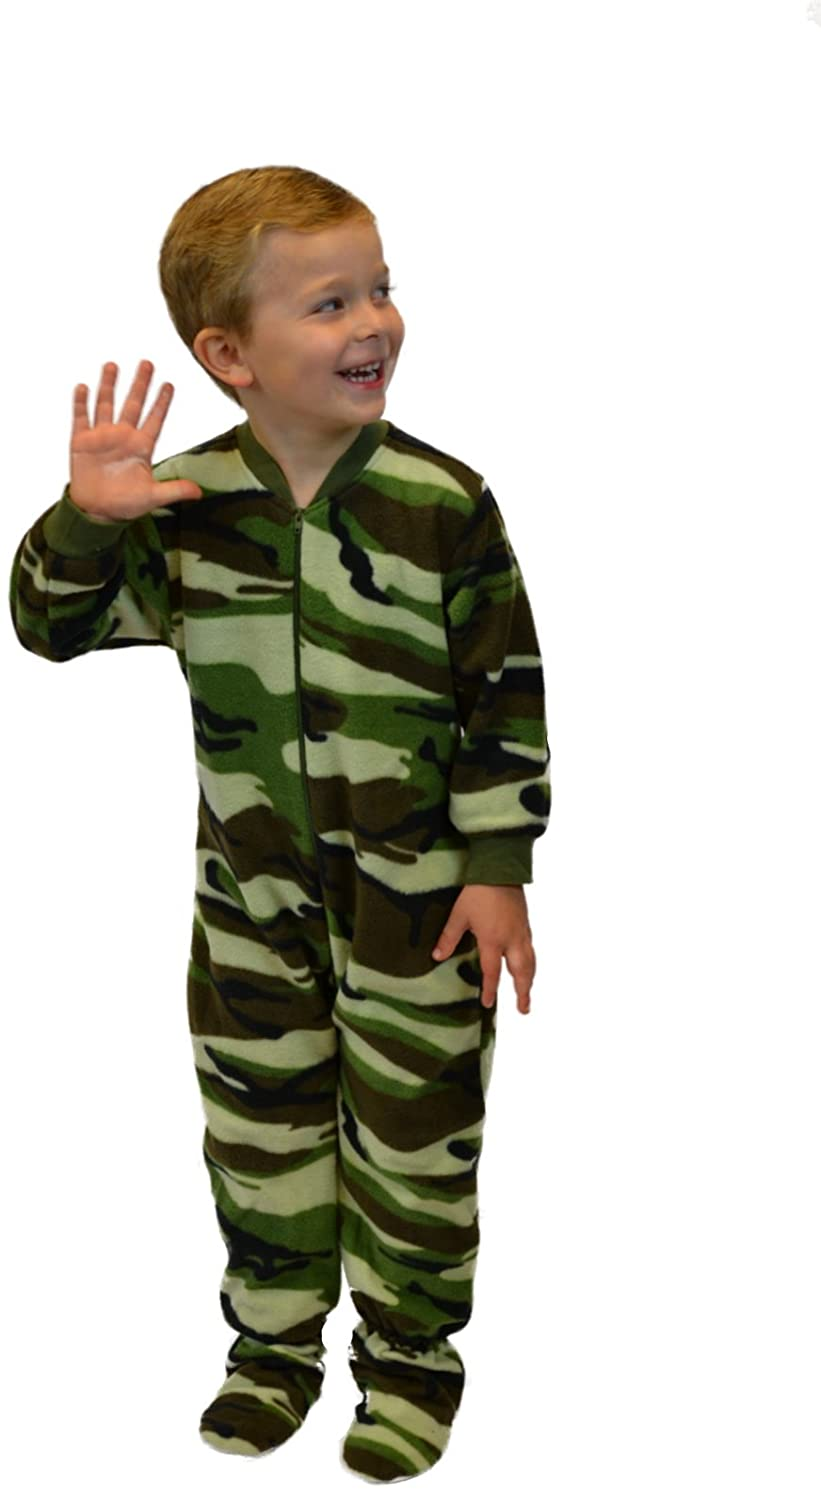 Amazon.com: Little Boys Infant Toddler Green Camo Fleece Footed Pajamas Onesie Sleeper 12M - 4T: Clothing